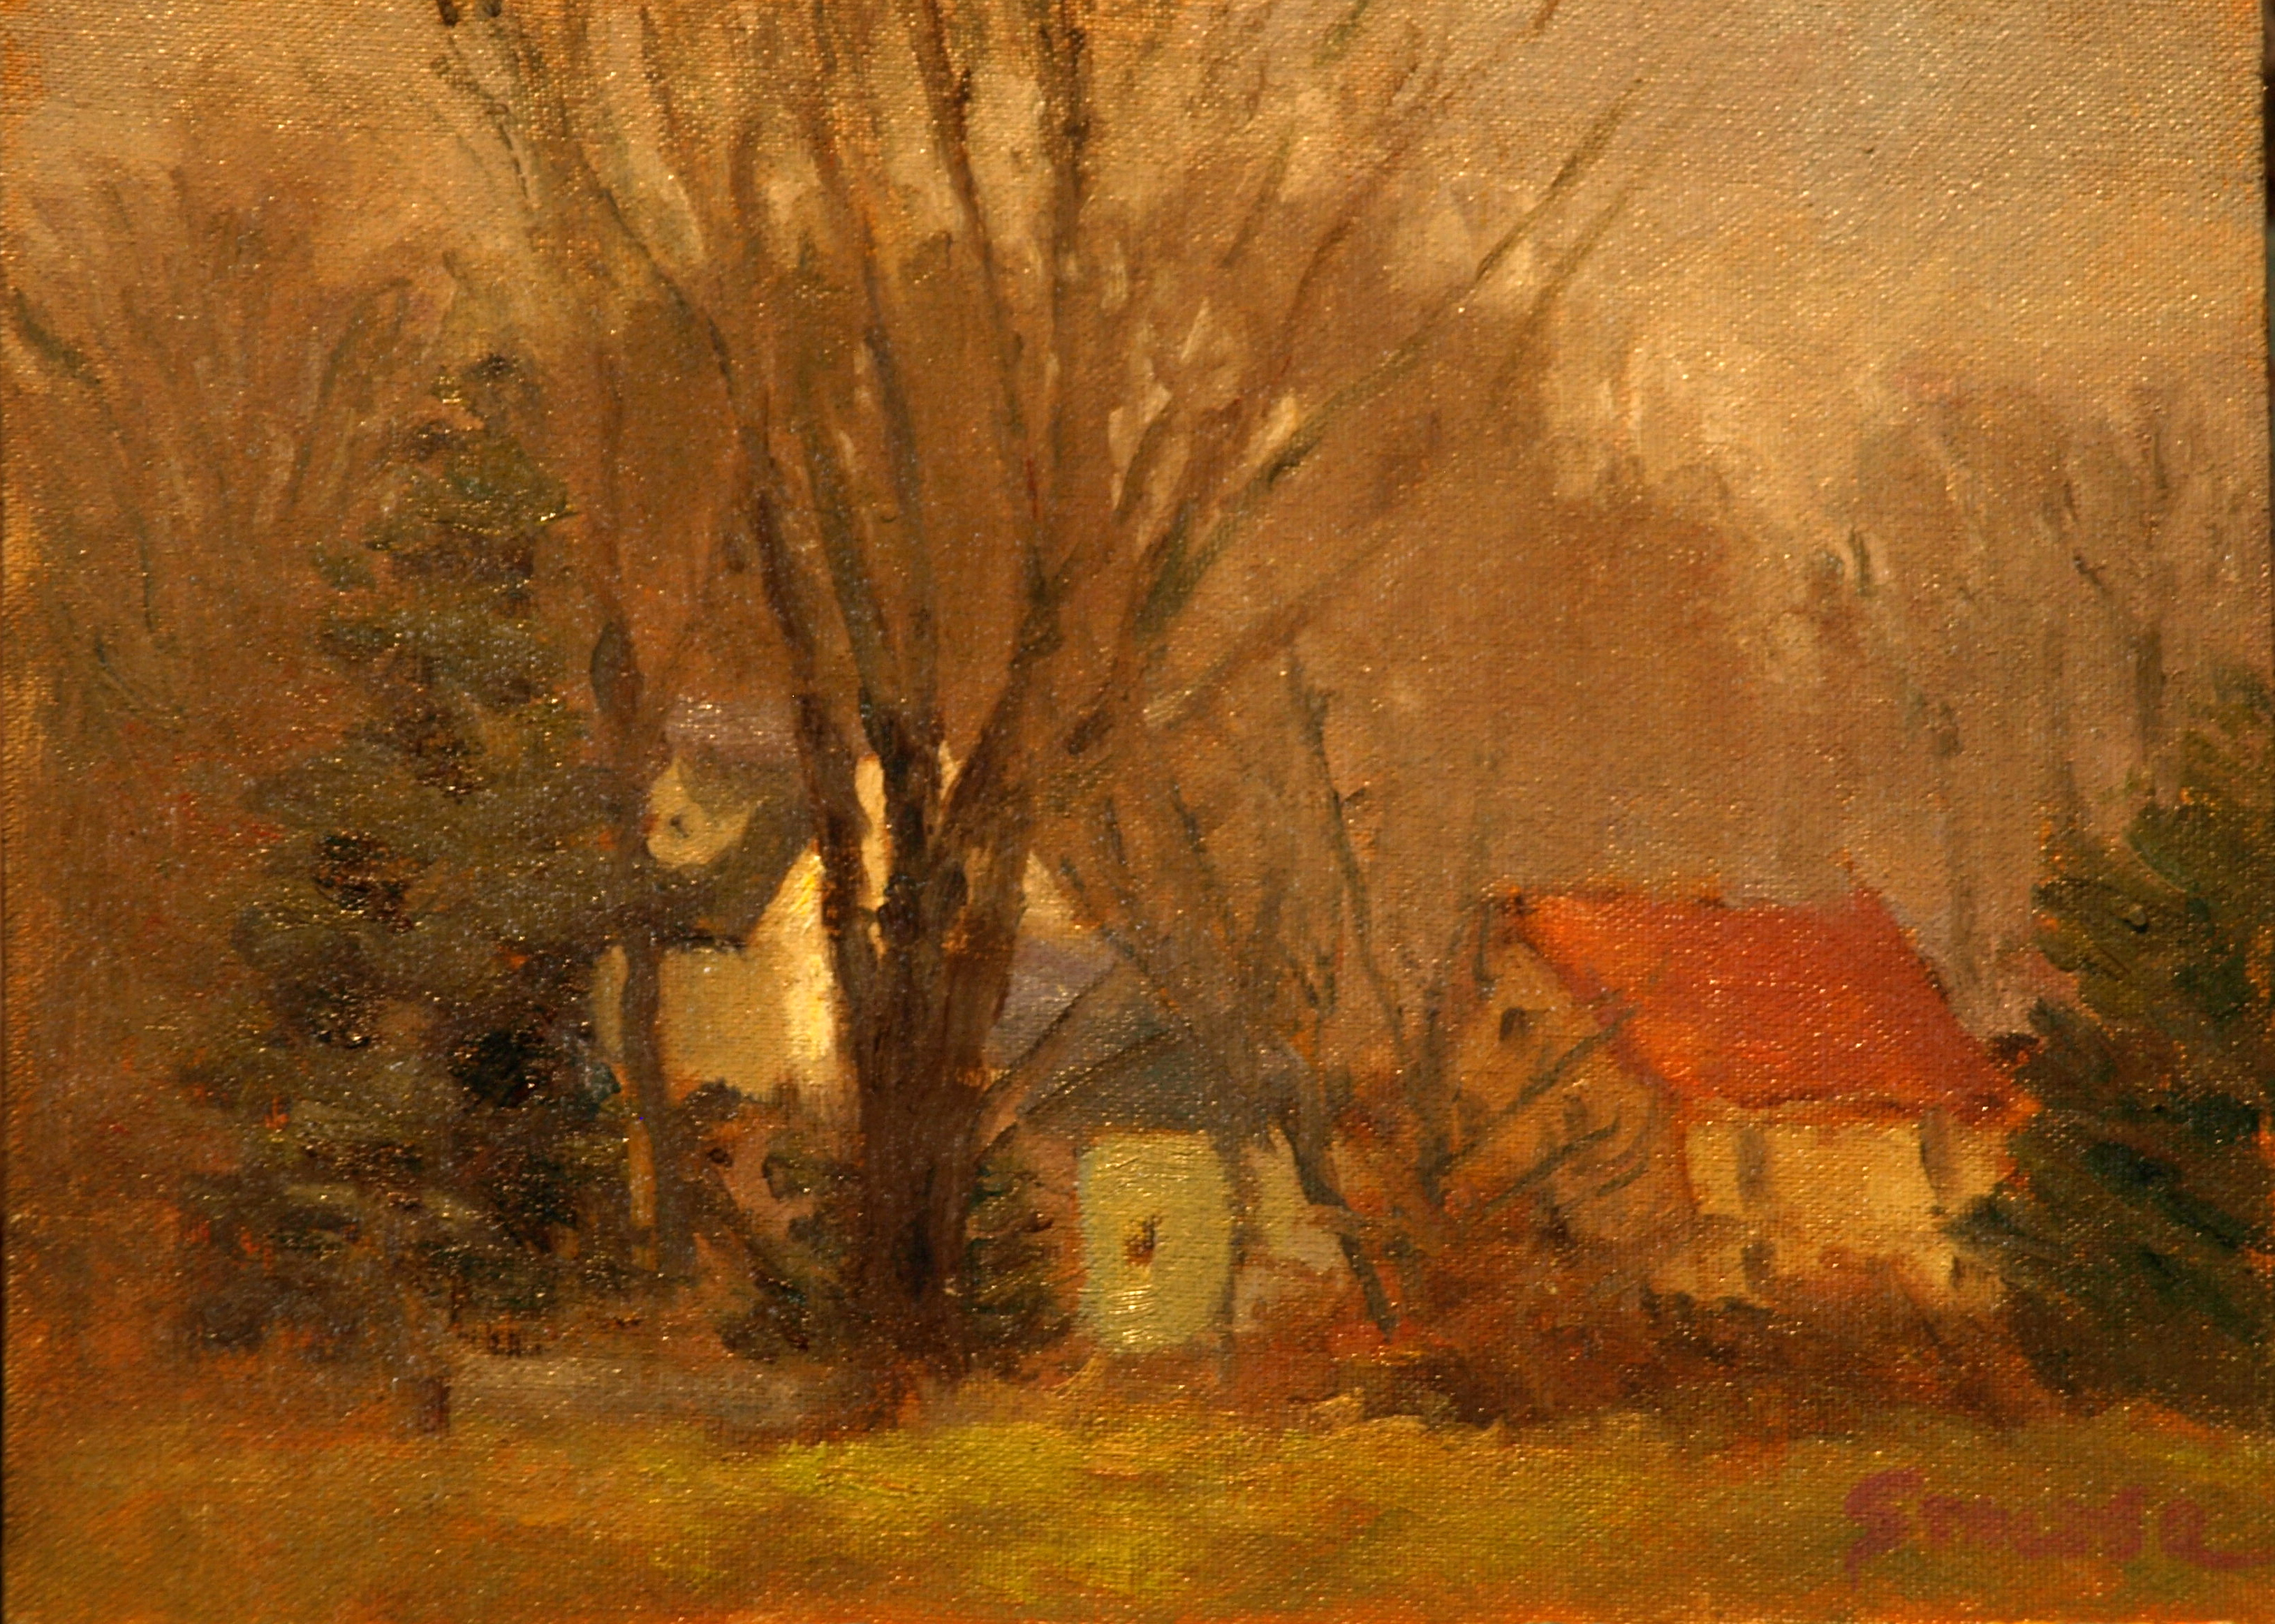 Autumn Haze, Oil on Canvas on Panel, 9 x 12 Inches, by Richard Stalter, $225